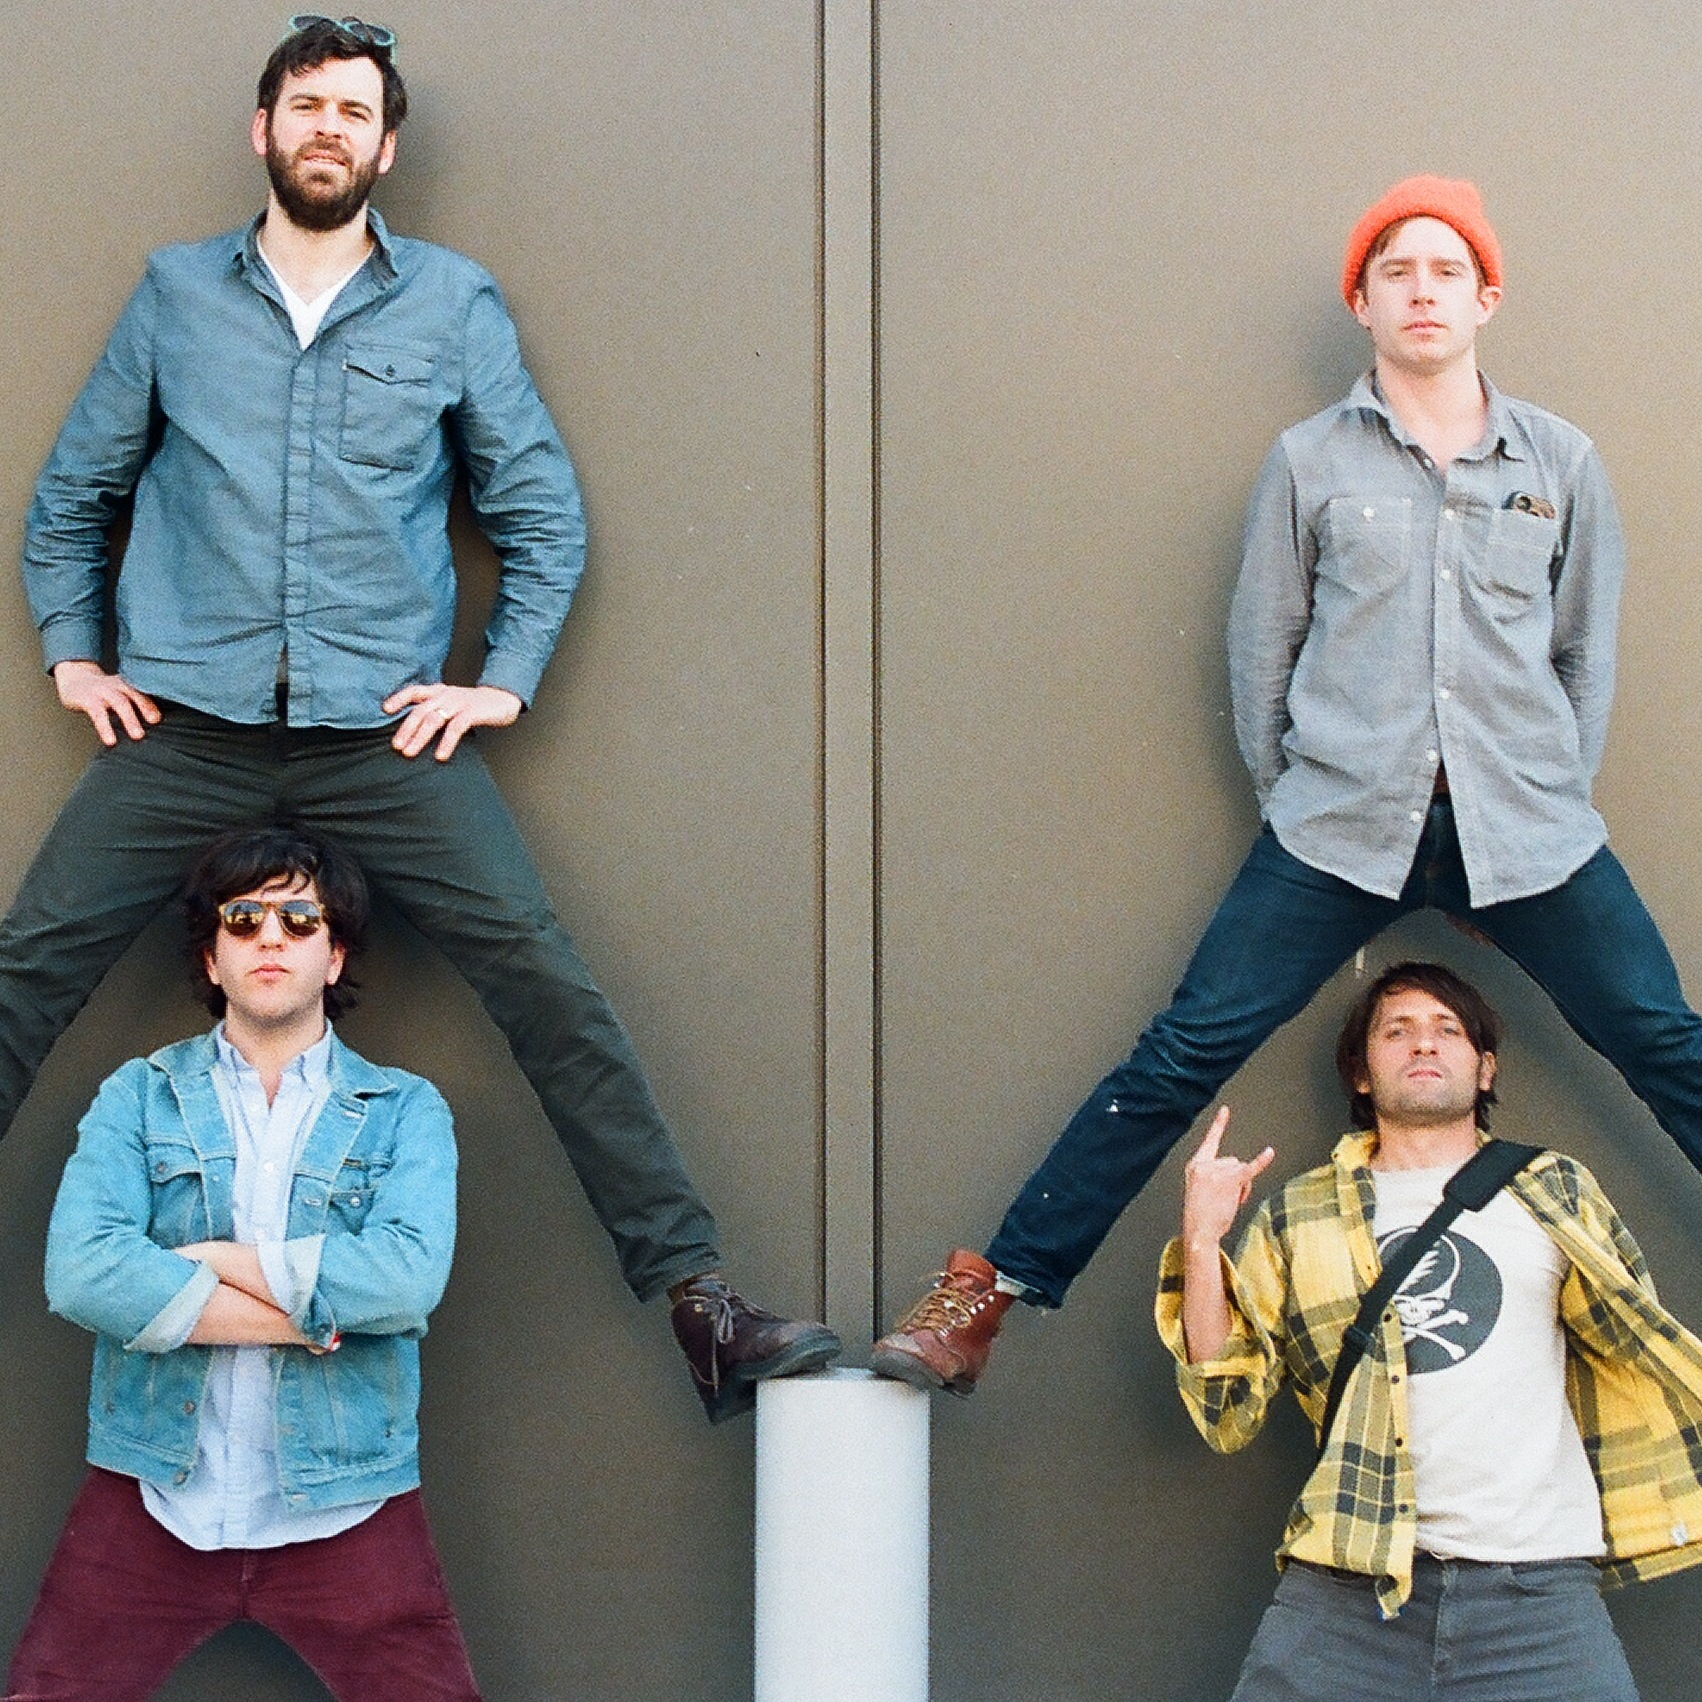 A Day in the Life: Dr. Dog